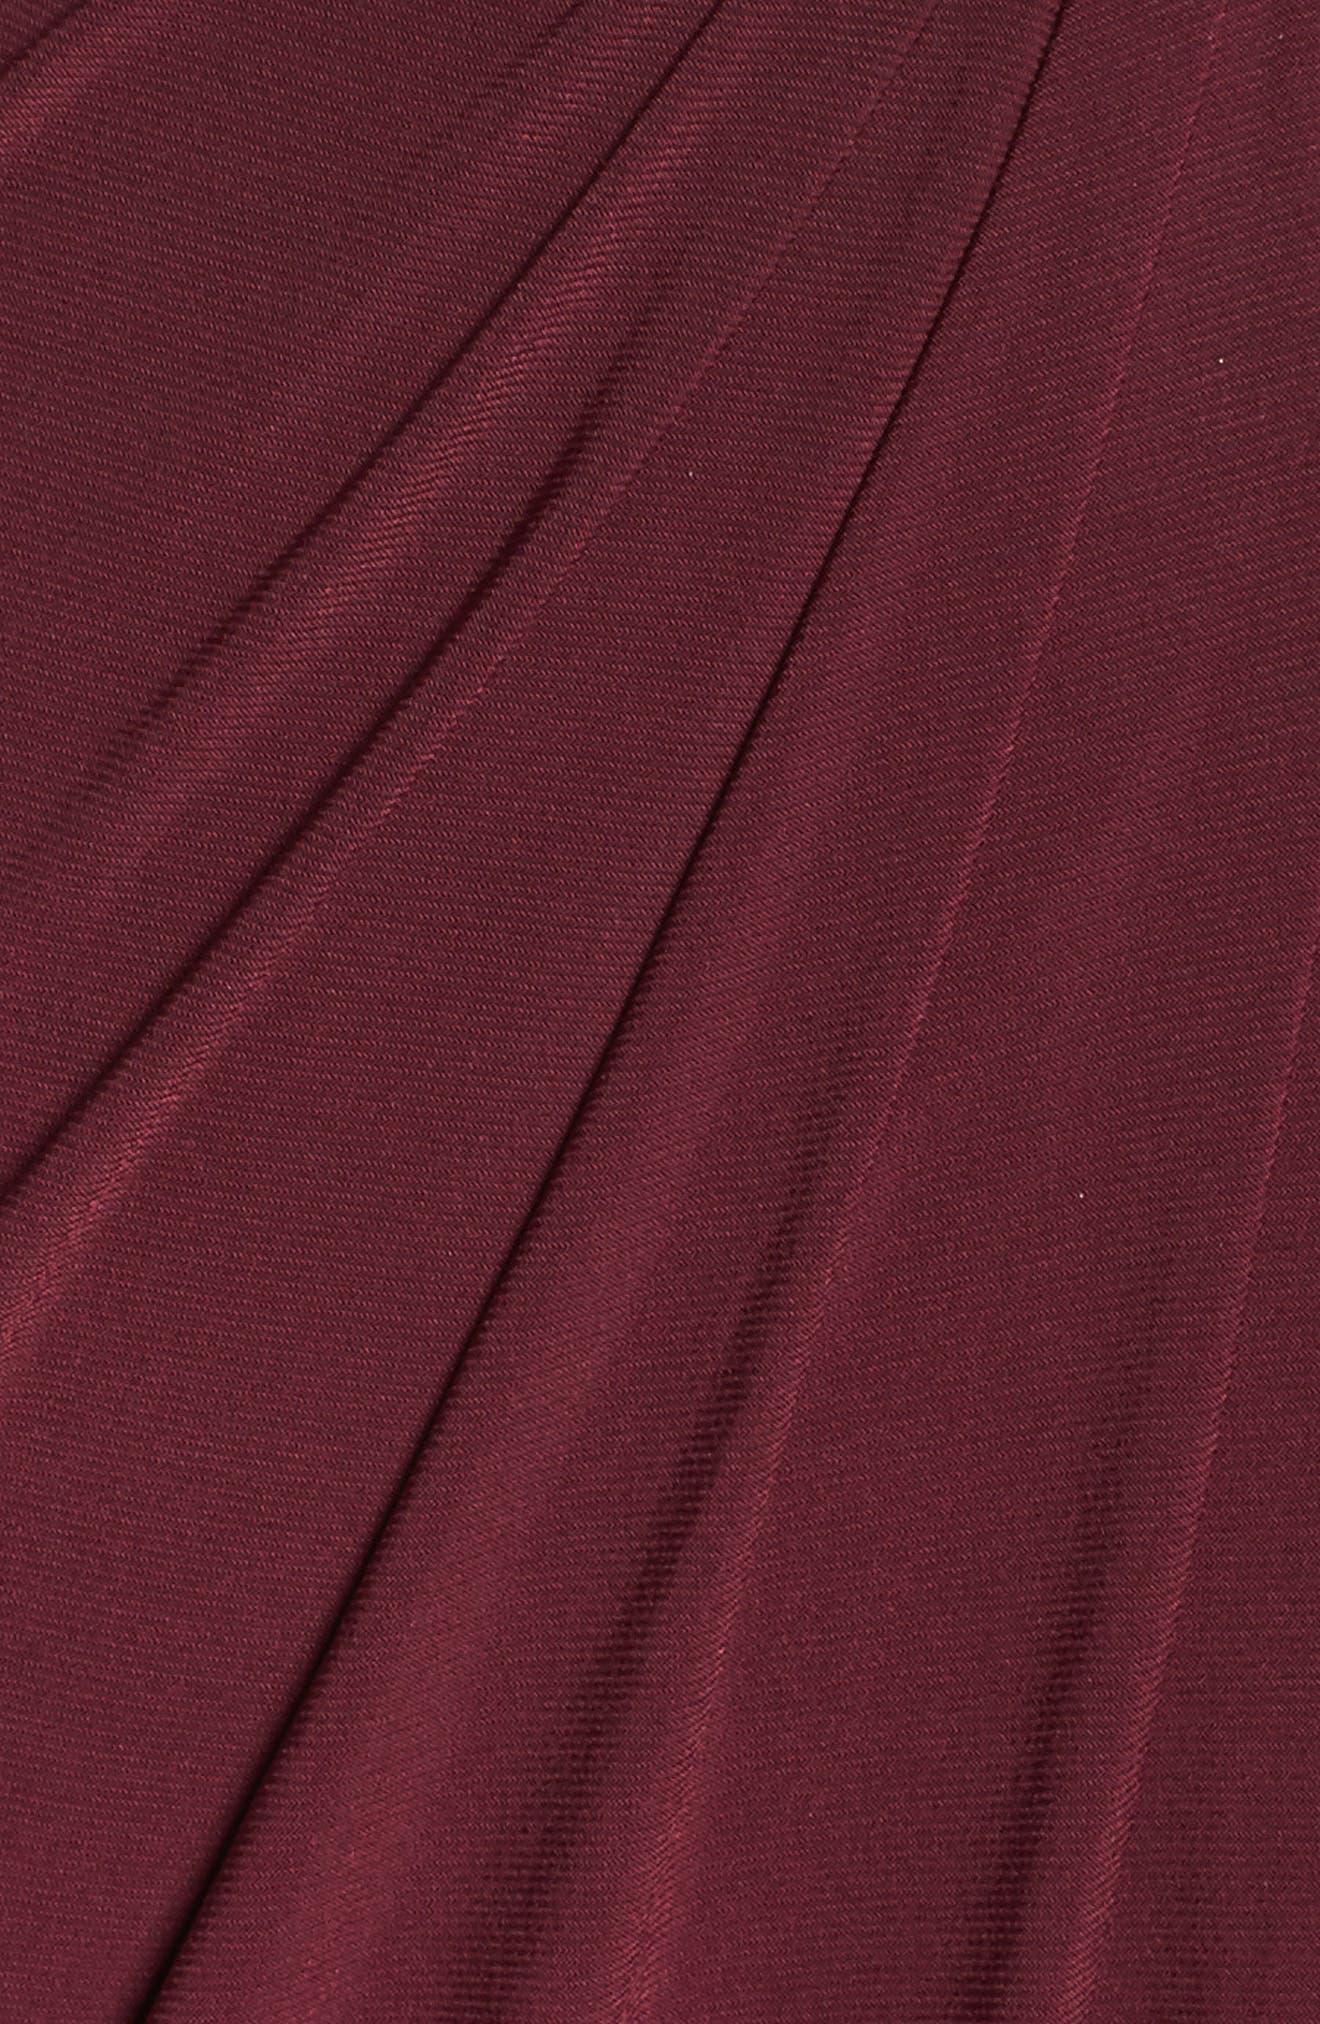 Embellished Shoulder Jersey Gown,                             Alternate thumbnail 5, color,                             Burgundy